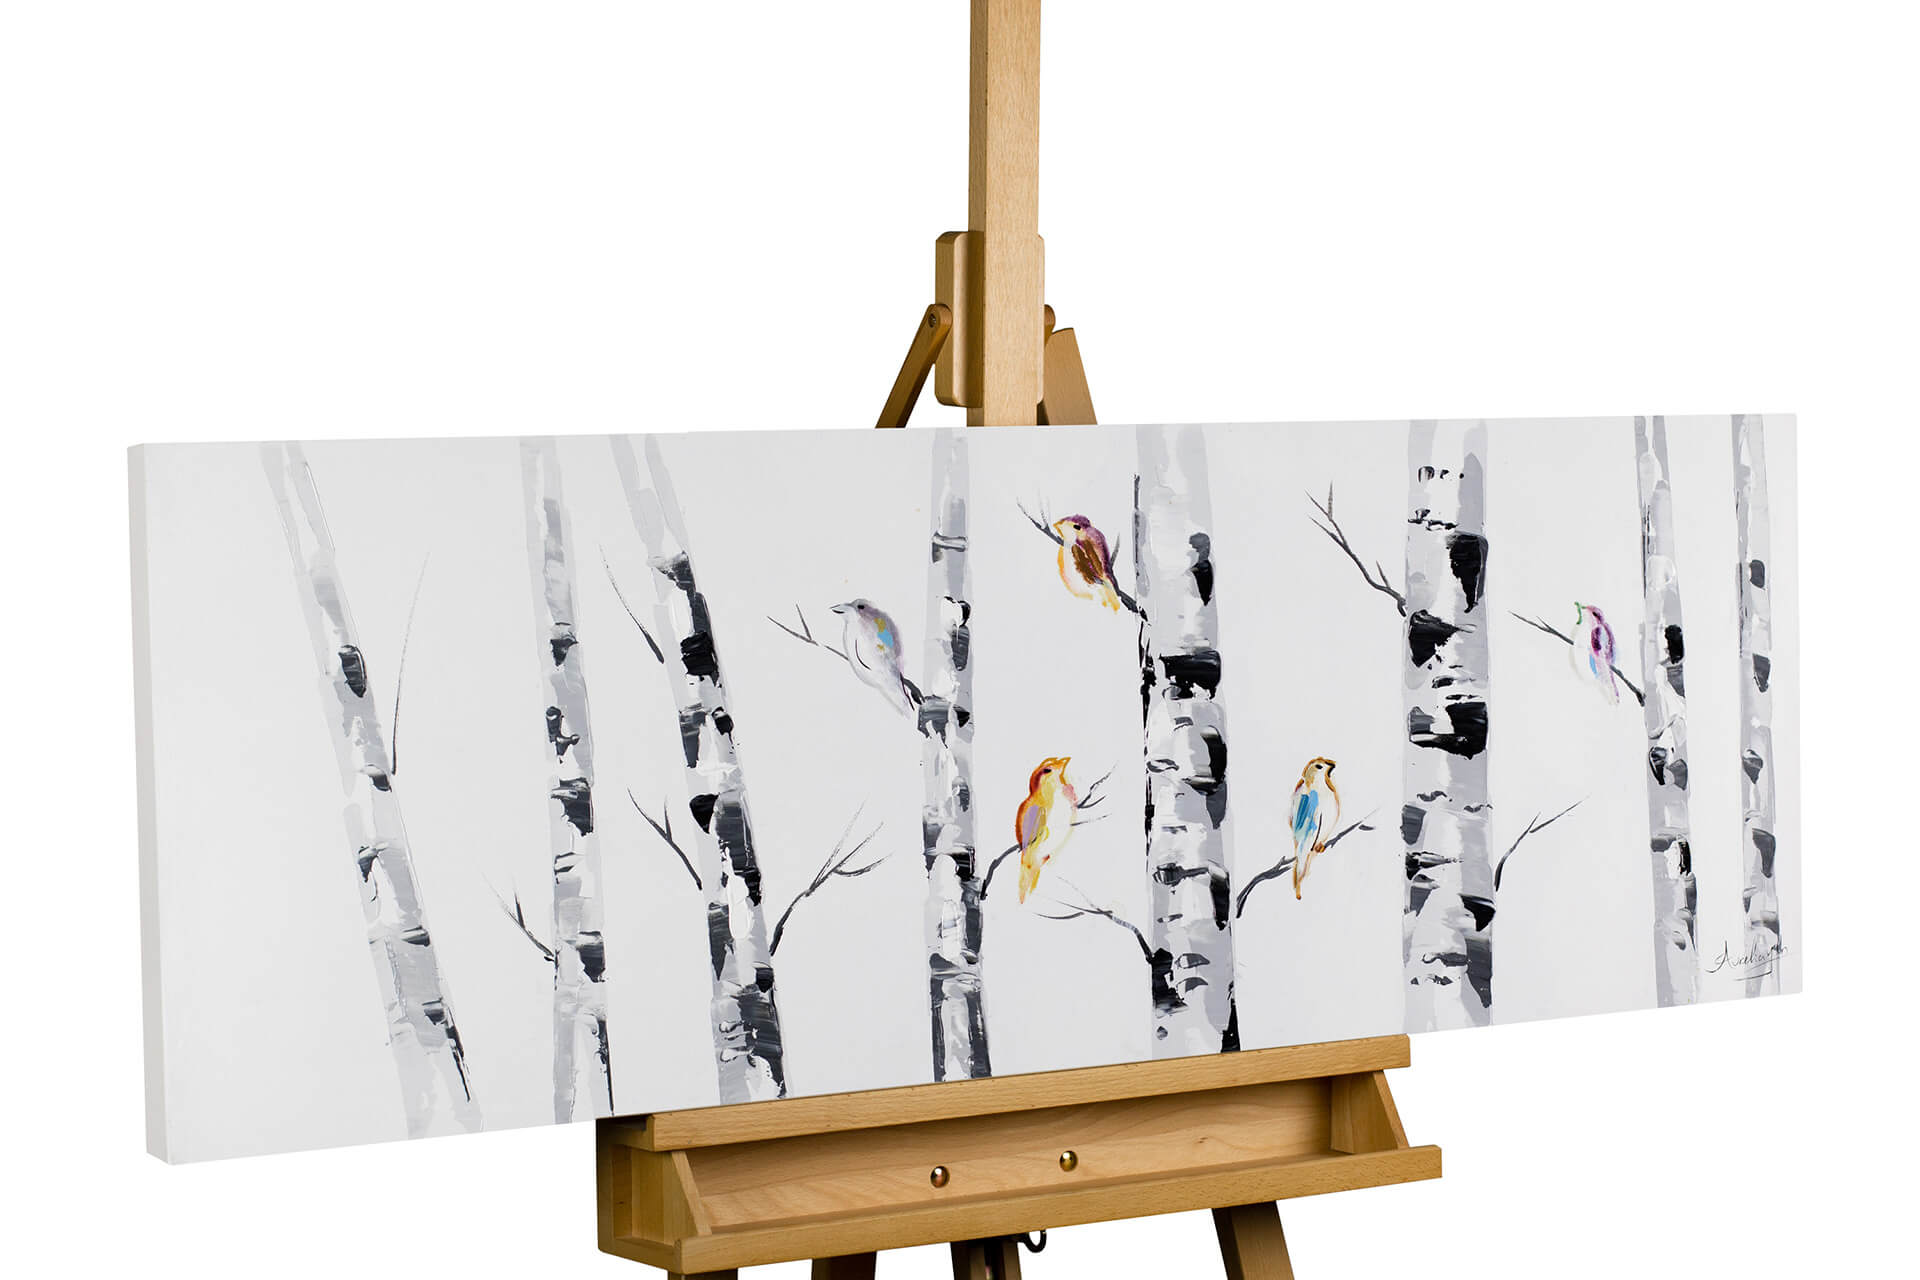 acrylbild baum natur wald online kaufen kunstloft. Black Bedroom Furniture Sets. Home Design Ideas